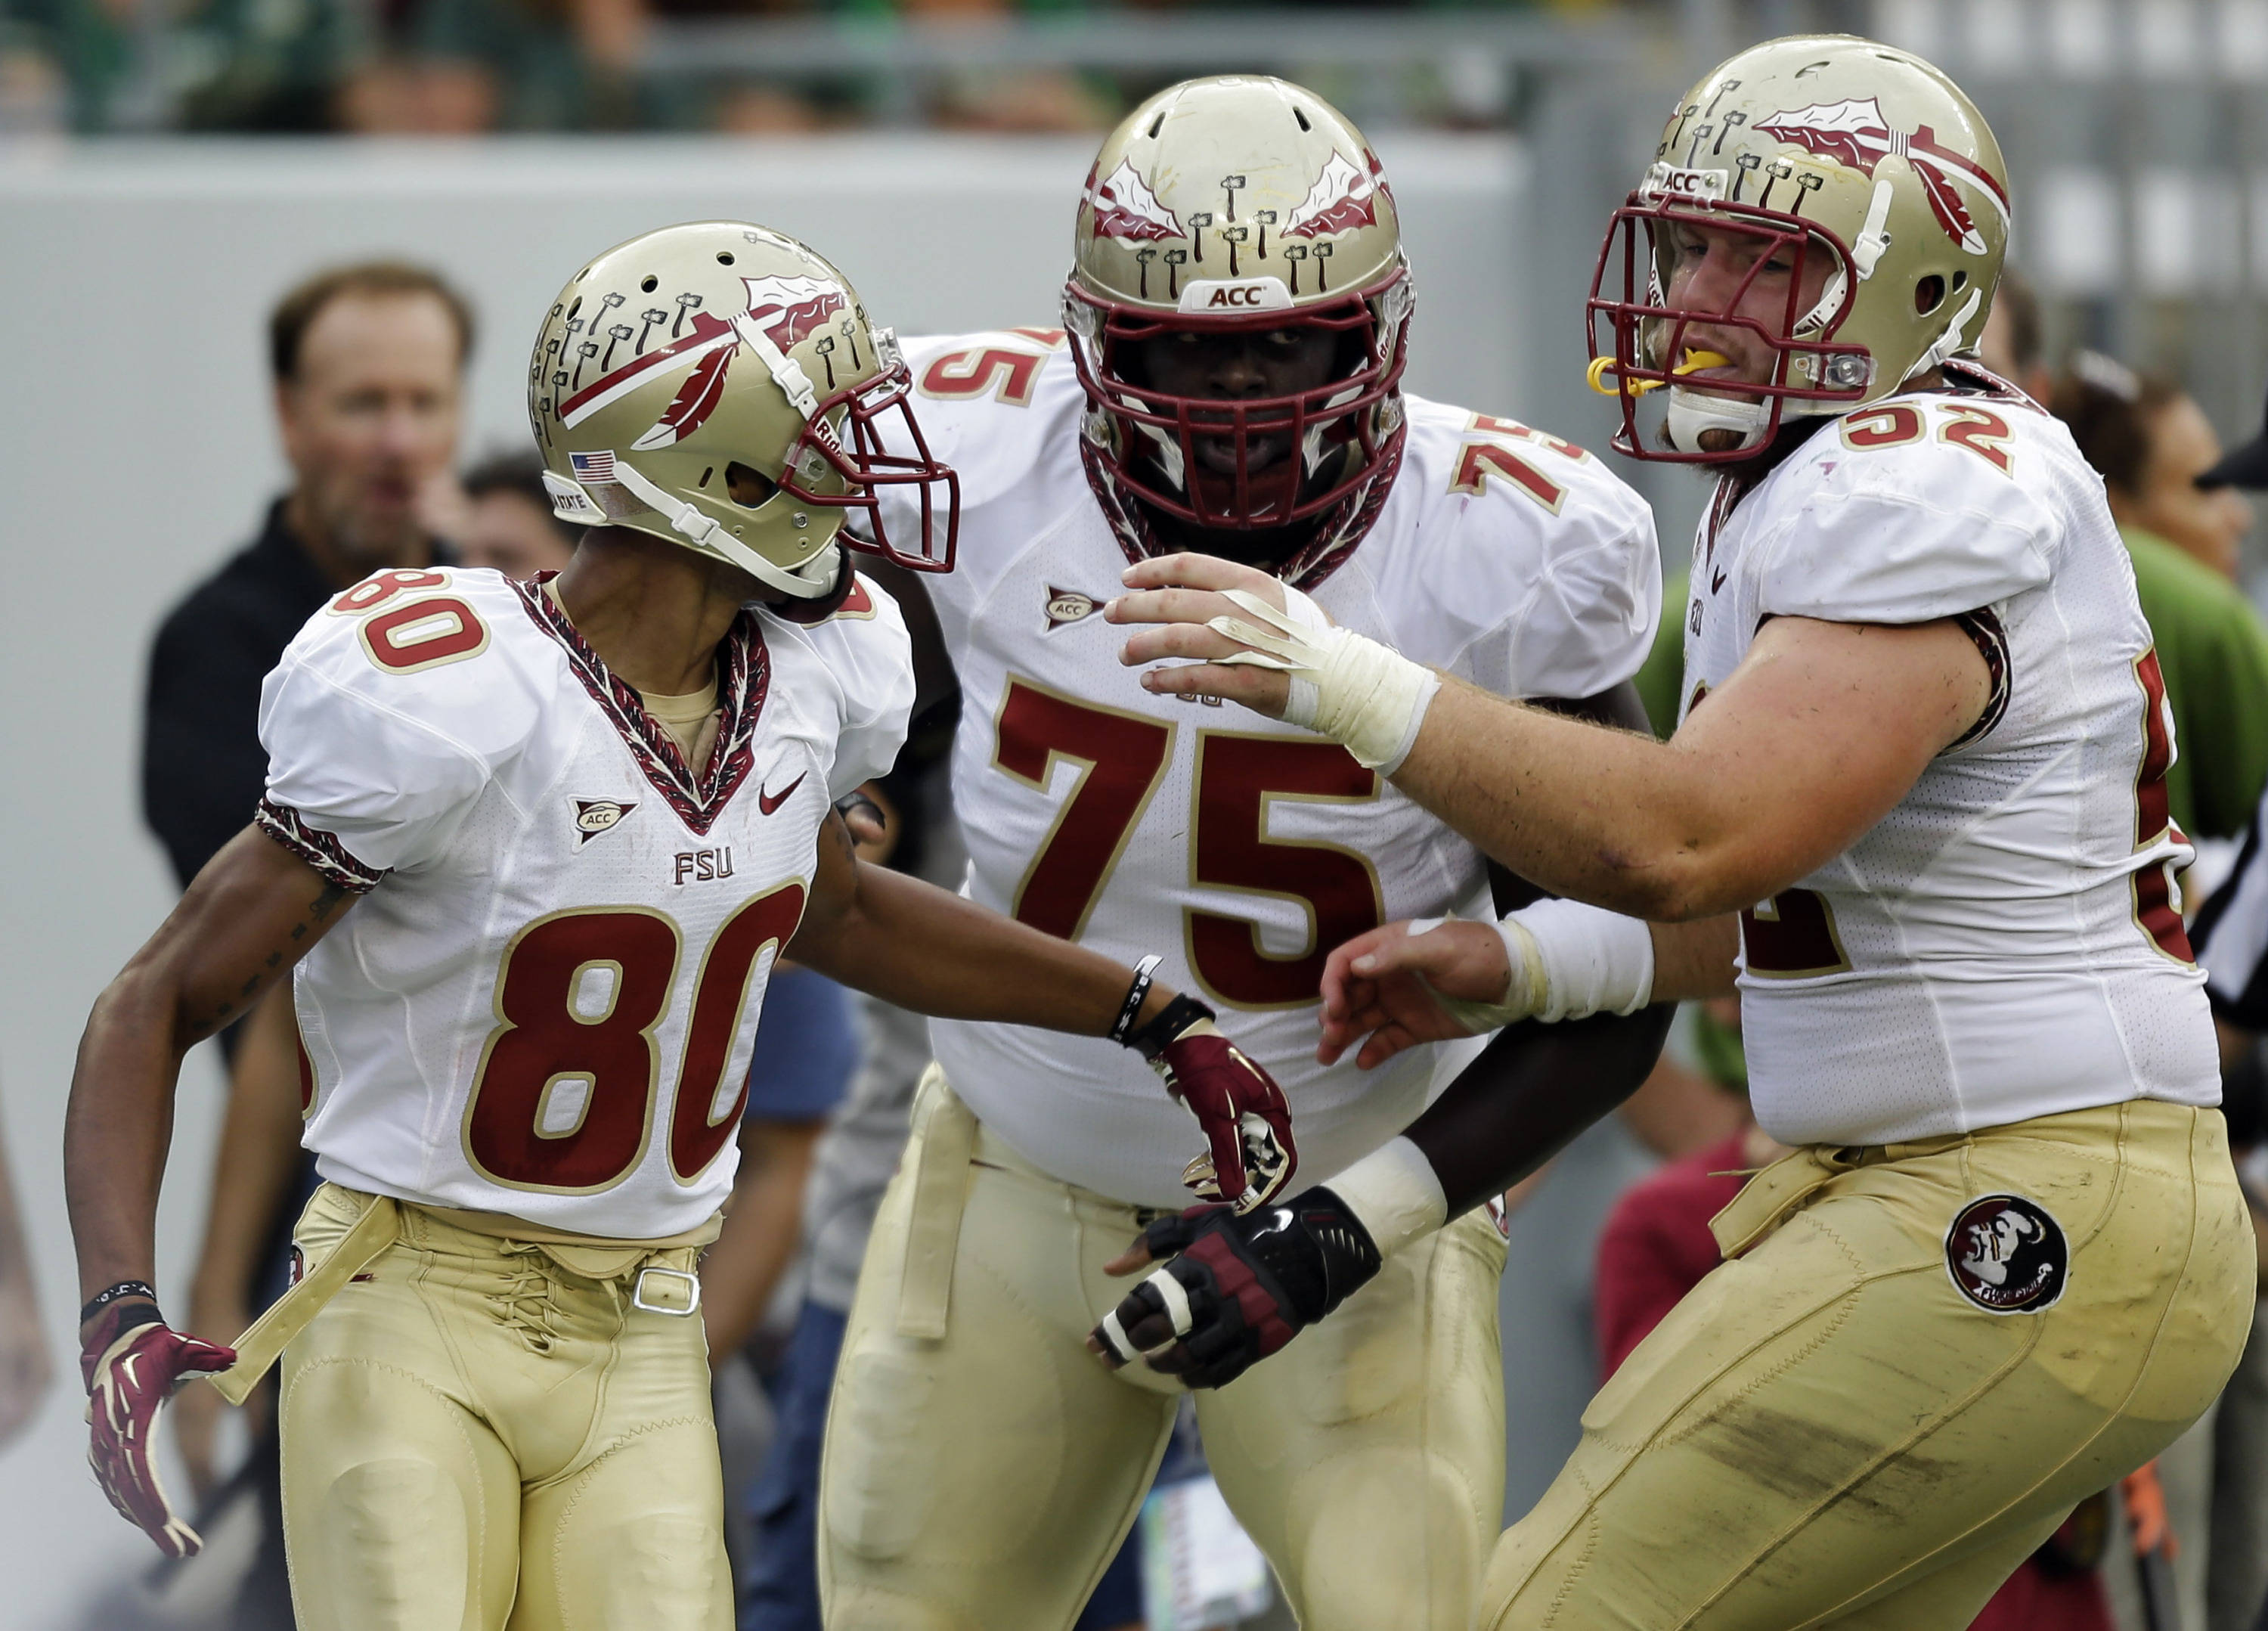 Florida State wide receiver Rashad Greene (80) celebrates with teammates Cameron Erving (75) and  Bryan Stork (52) after scoring a touchdown against South Florida during the first quarter. (AP Photo/Chris O'Meara)